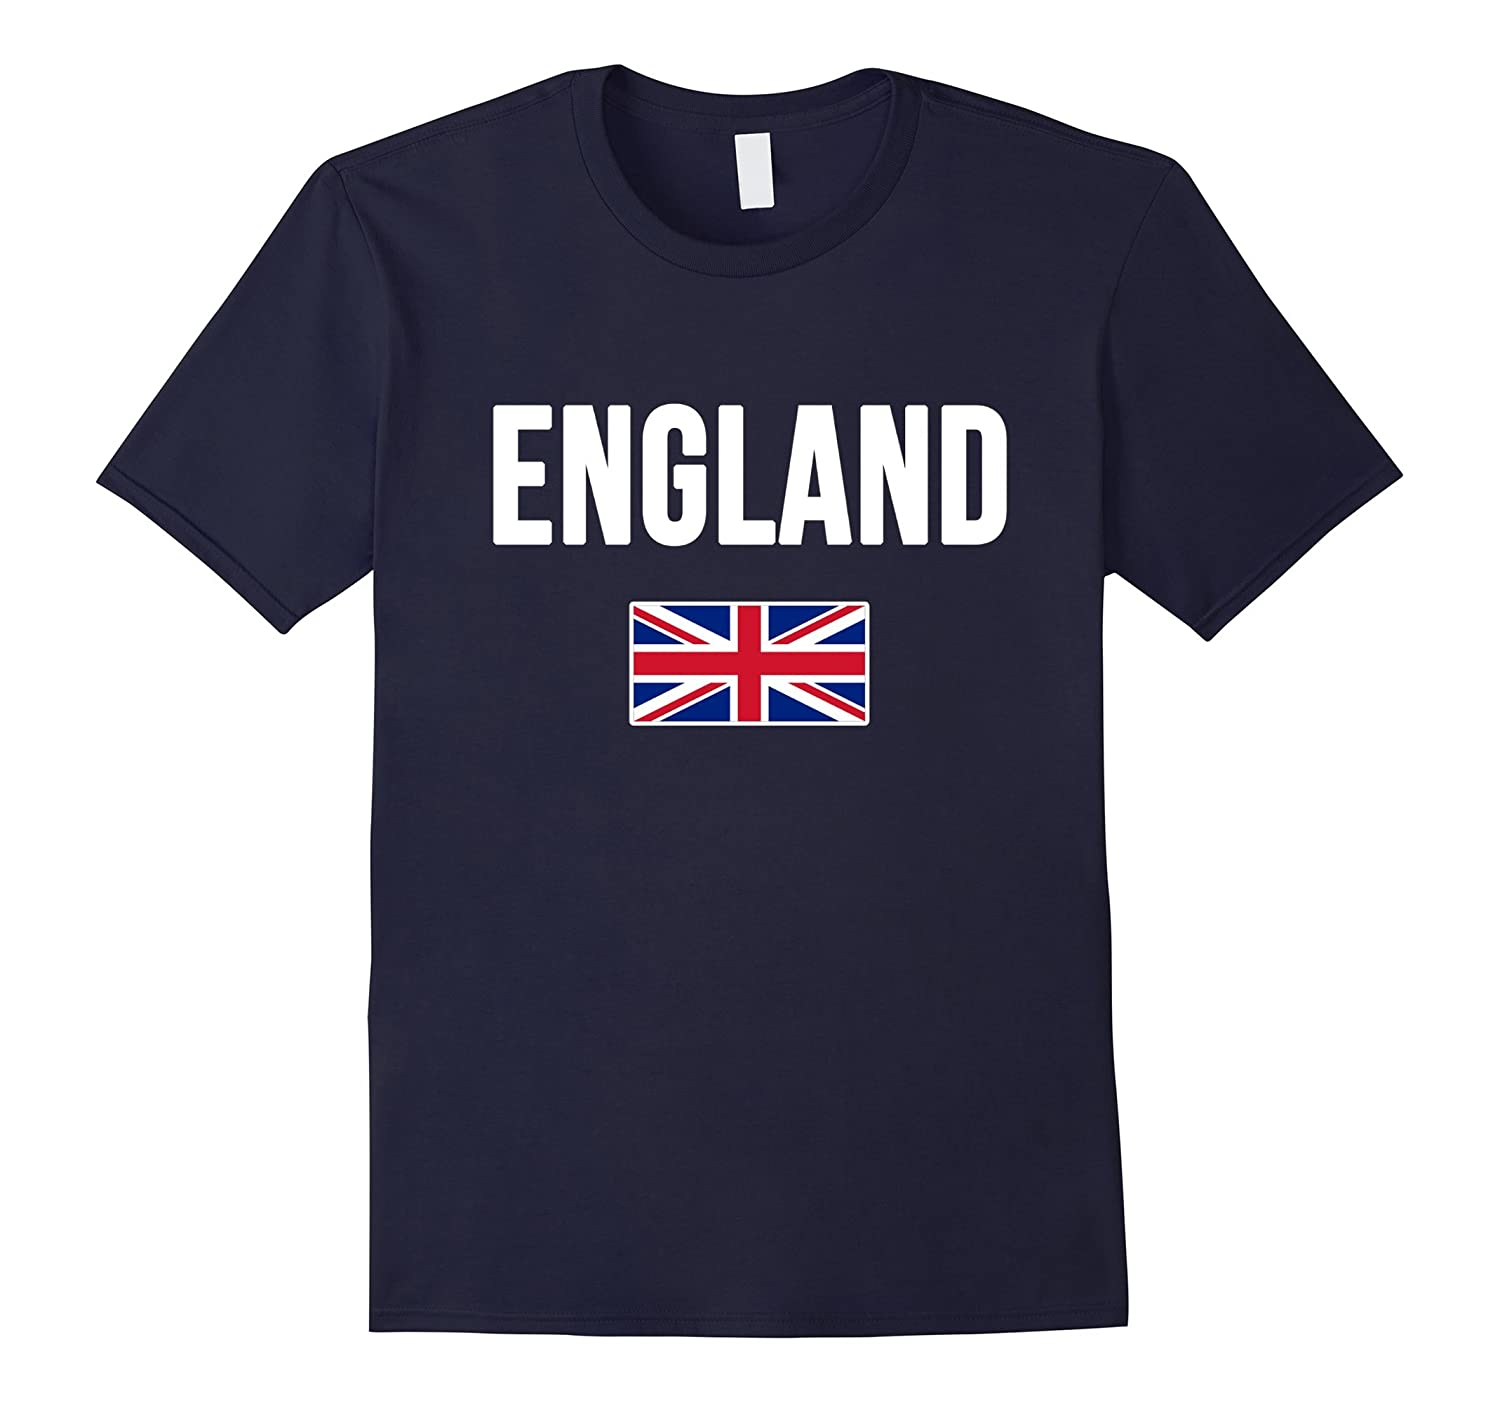 ENGLAND T-shirt British Flag English Tee Uk Souvenir Travel-TD